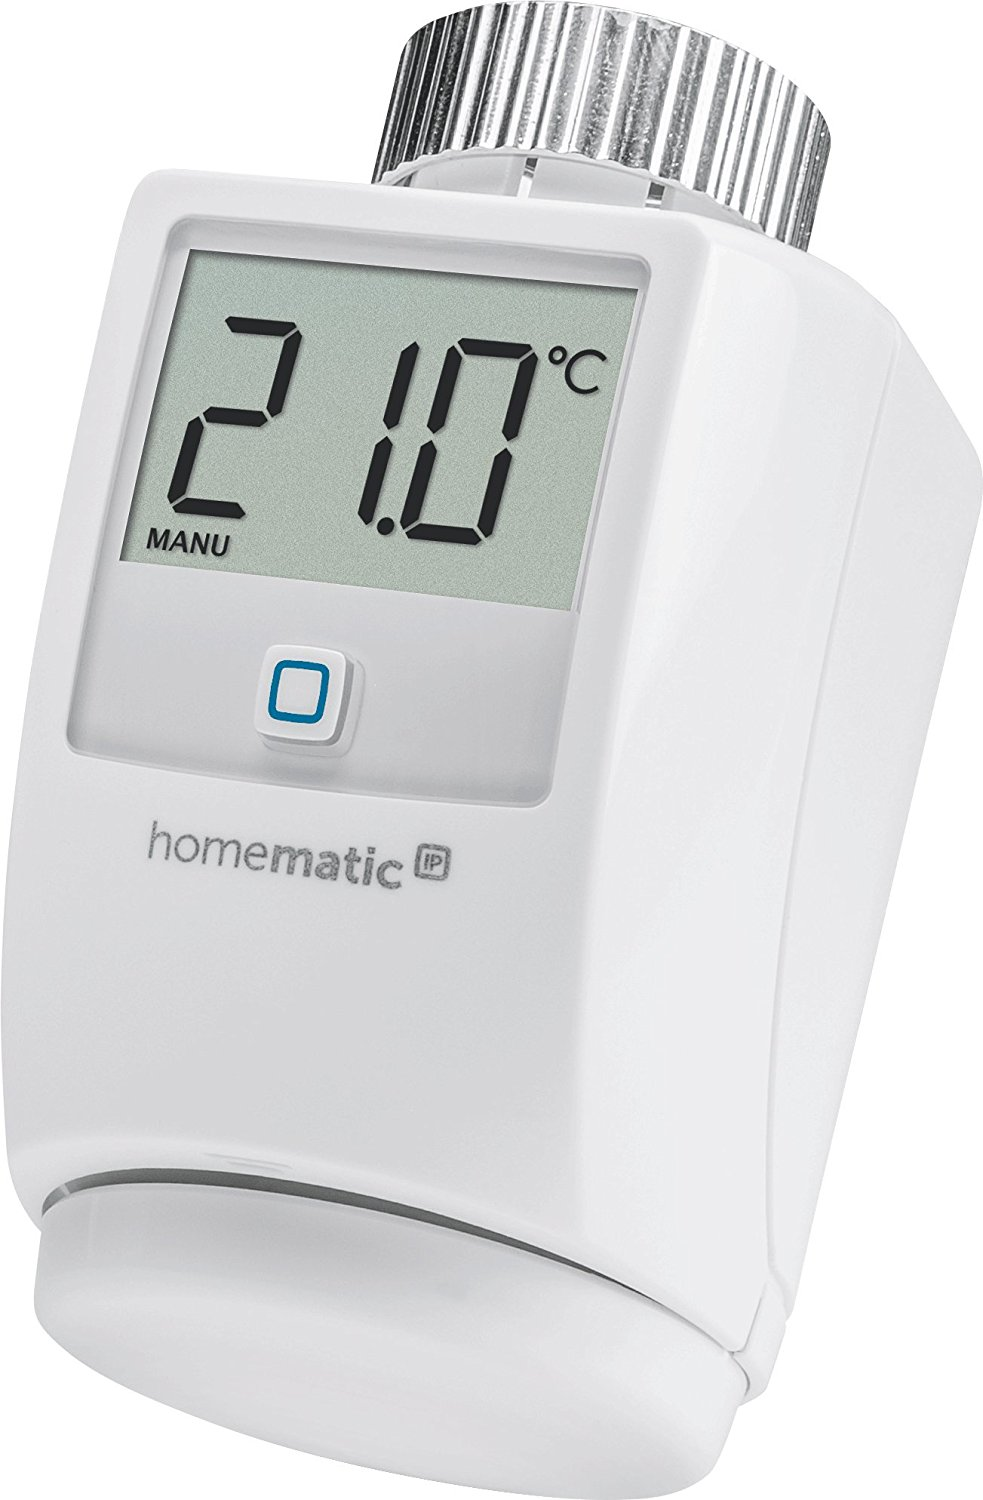 Heizkörperthermostat (Homematic IP) für Magenta SmartHome (eQ3 - Telekom)